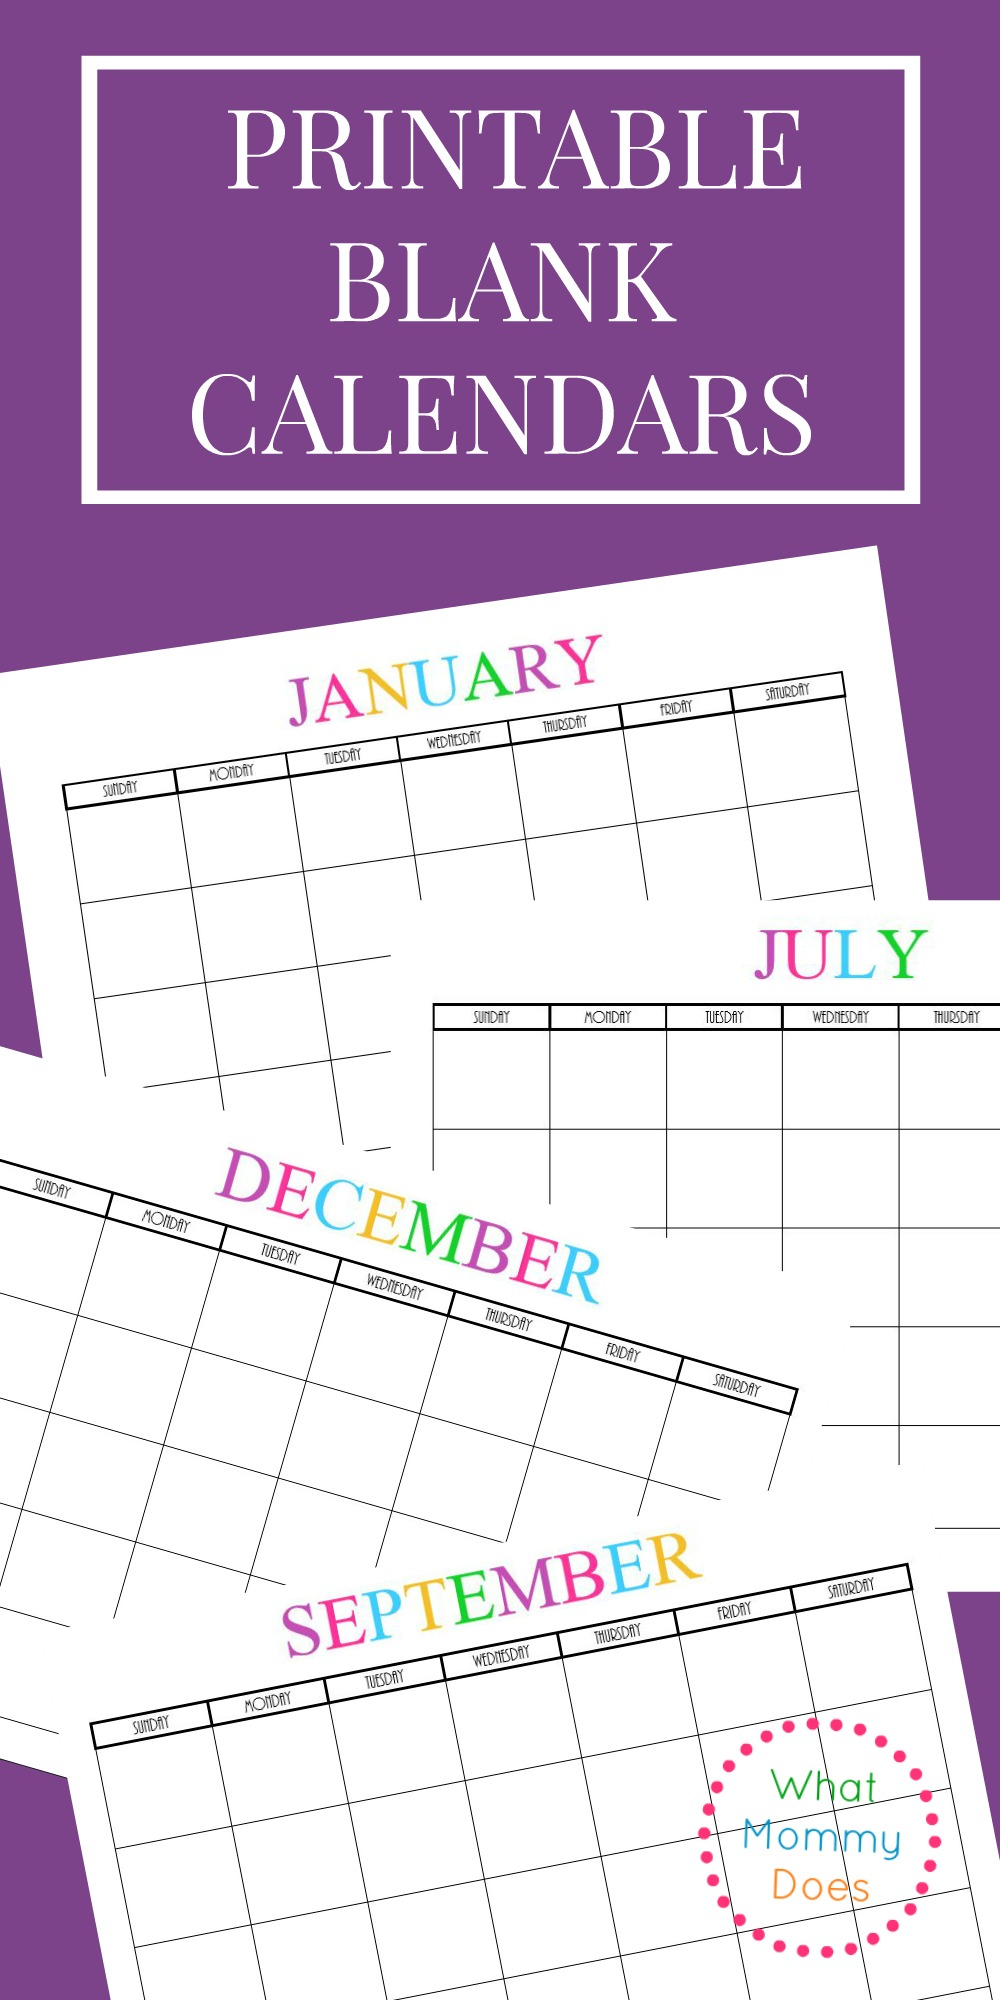 Free Printable Blank Monthly Calendars - 2019, 2020, 2021 ...